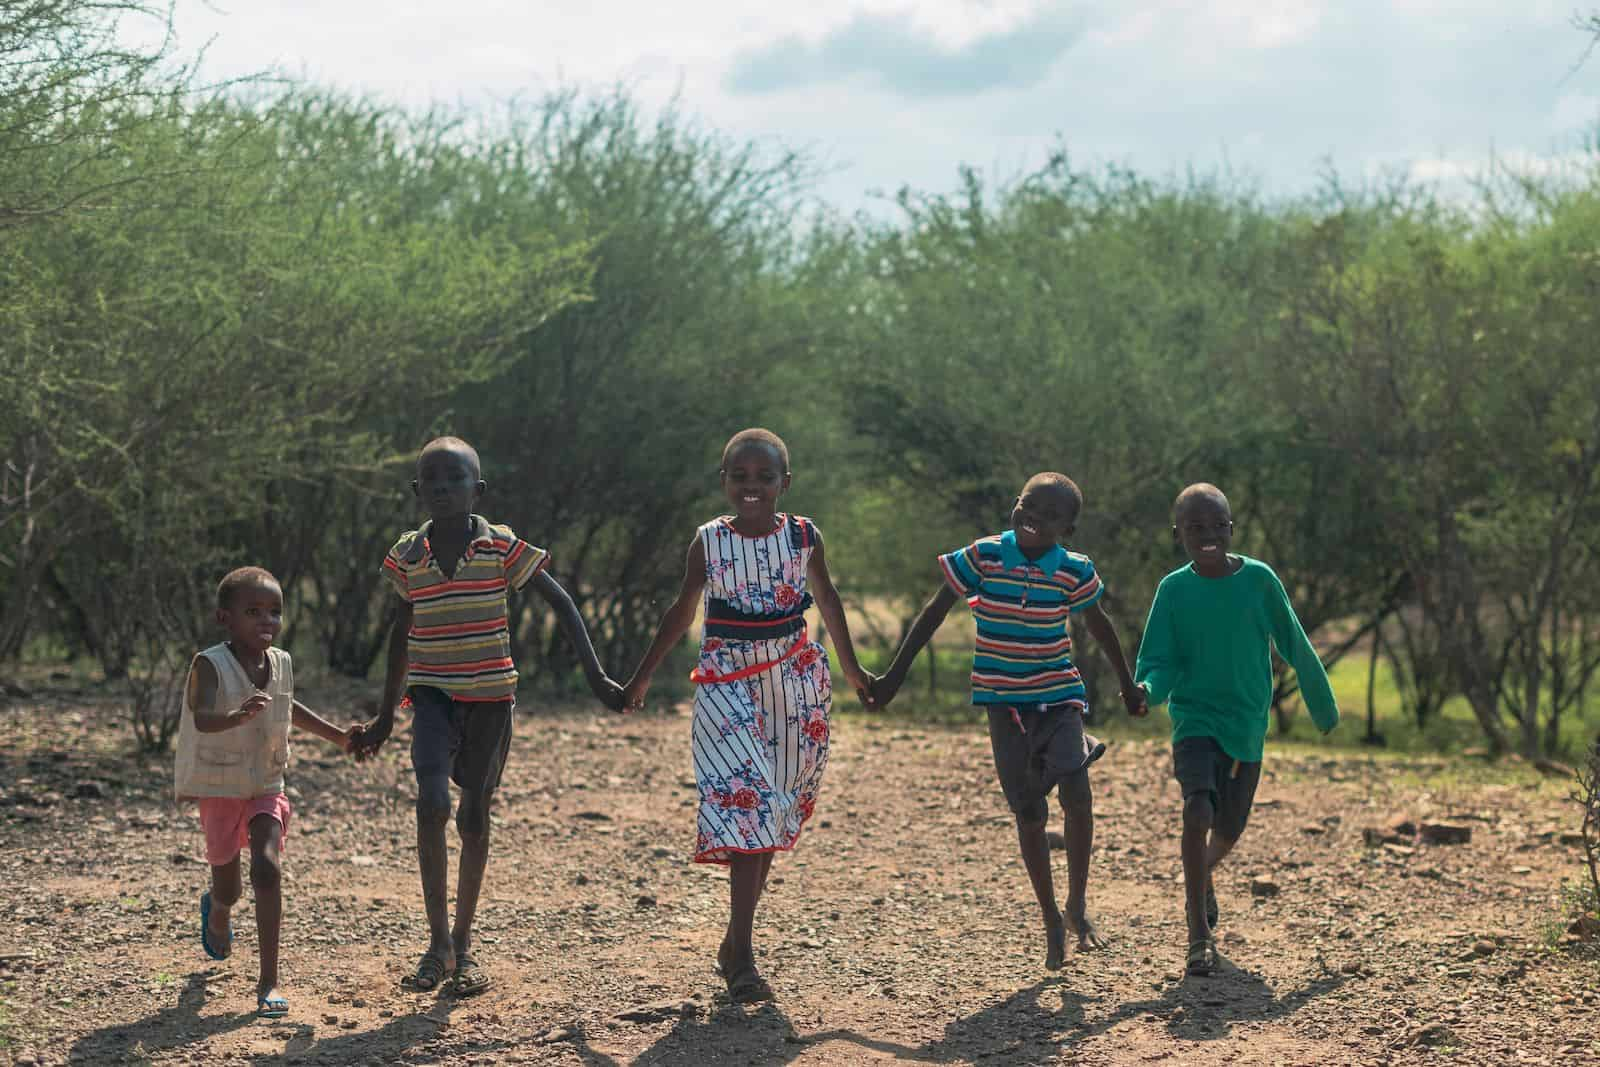 A group of five children hold hands and run towards the camera.